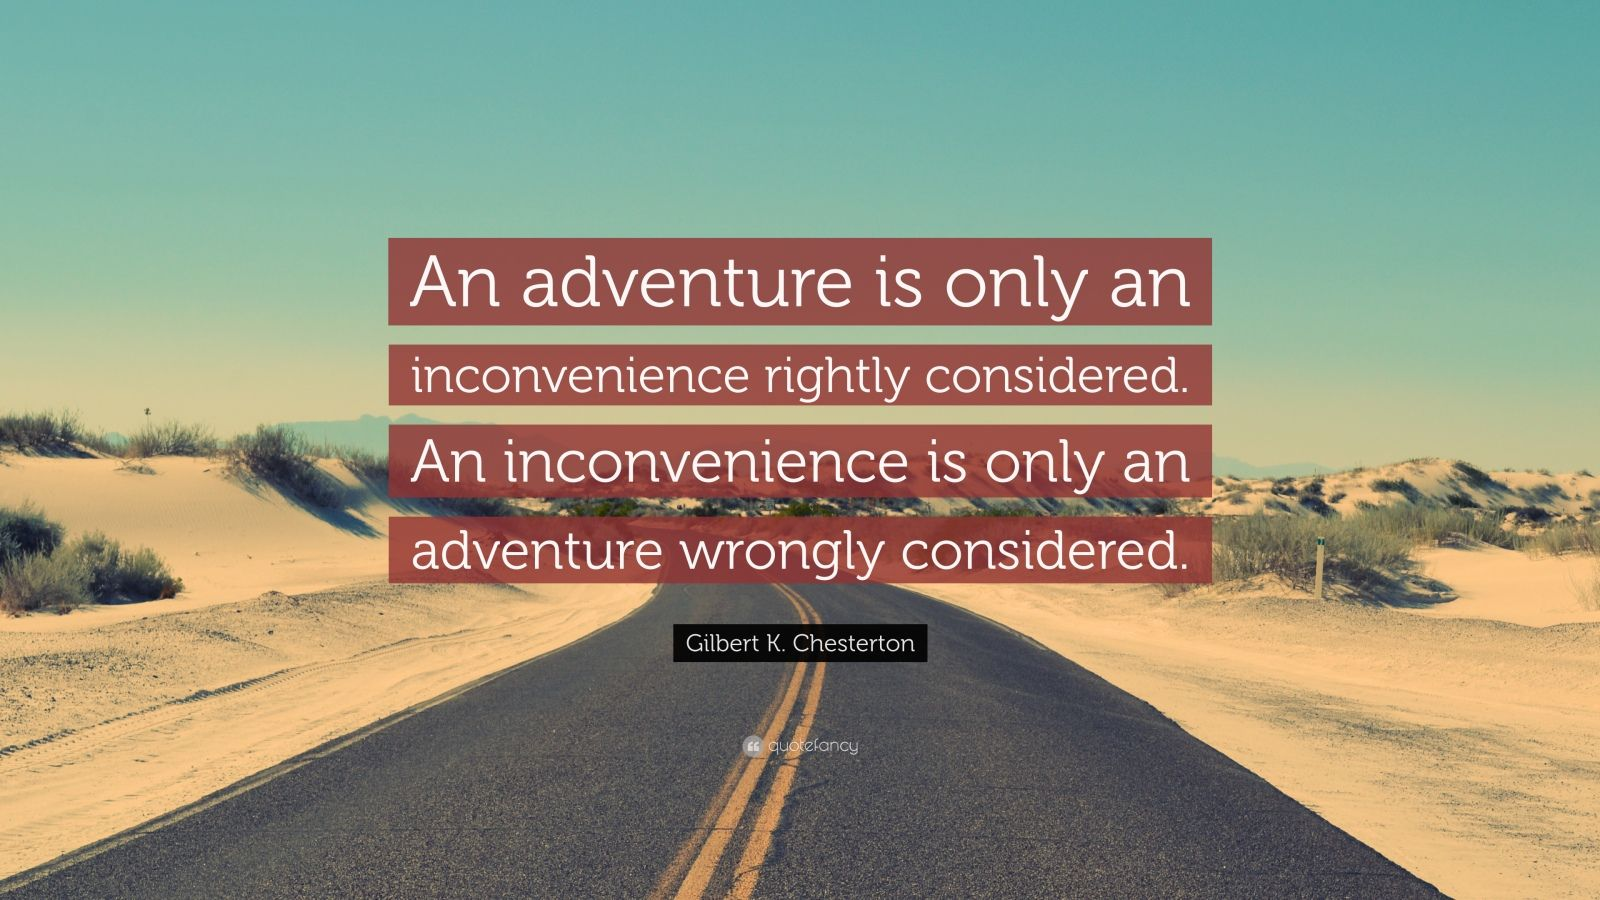 """Gilbert K. Chesterton Quote: """"An adventure is only an inconvenience rightly considered. An inconvenience is only an adventure wrongly considered."""""""